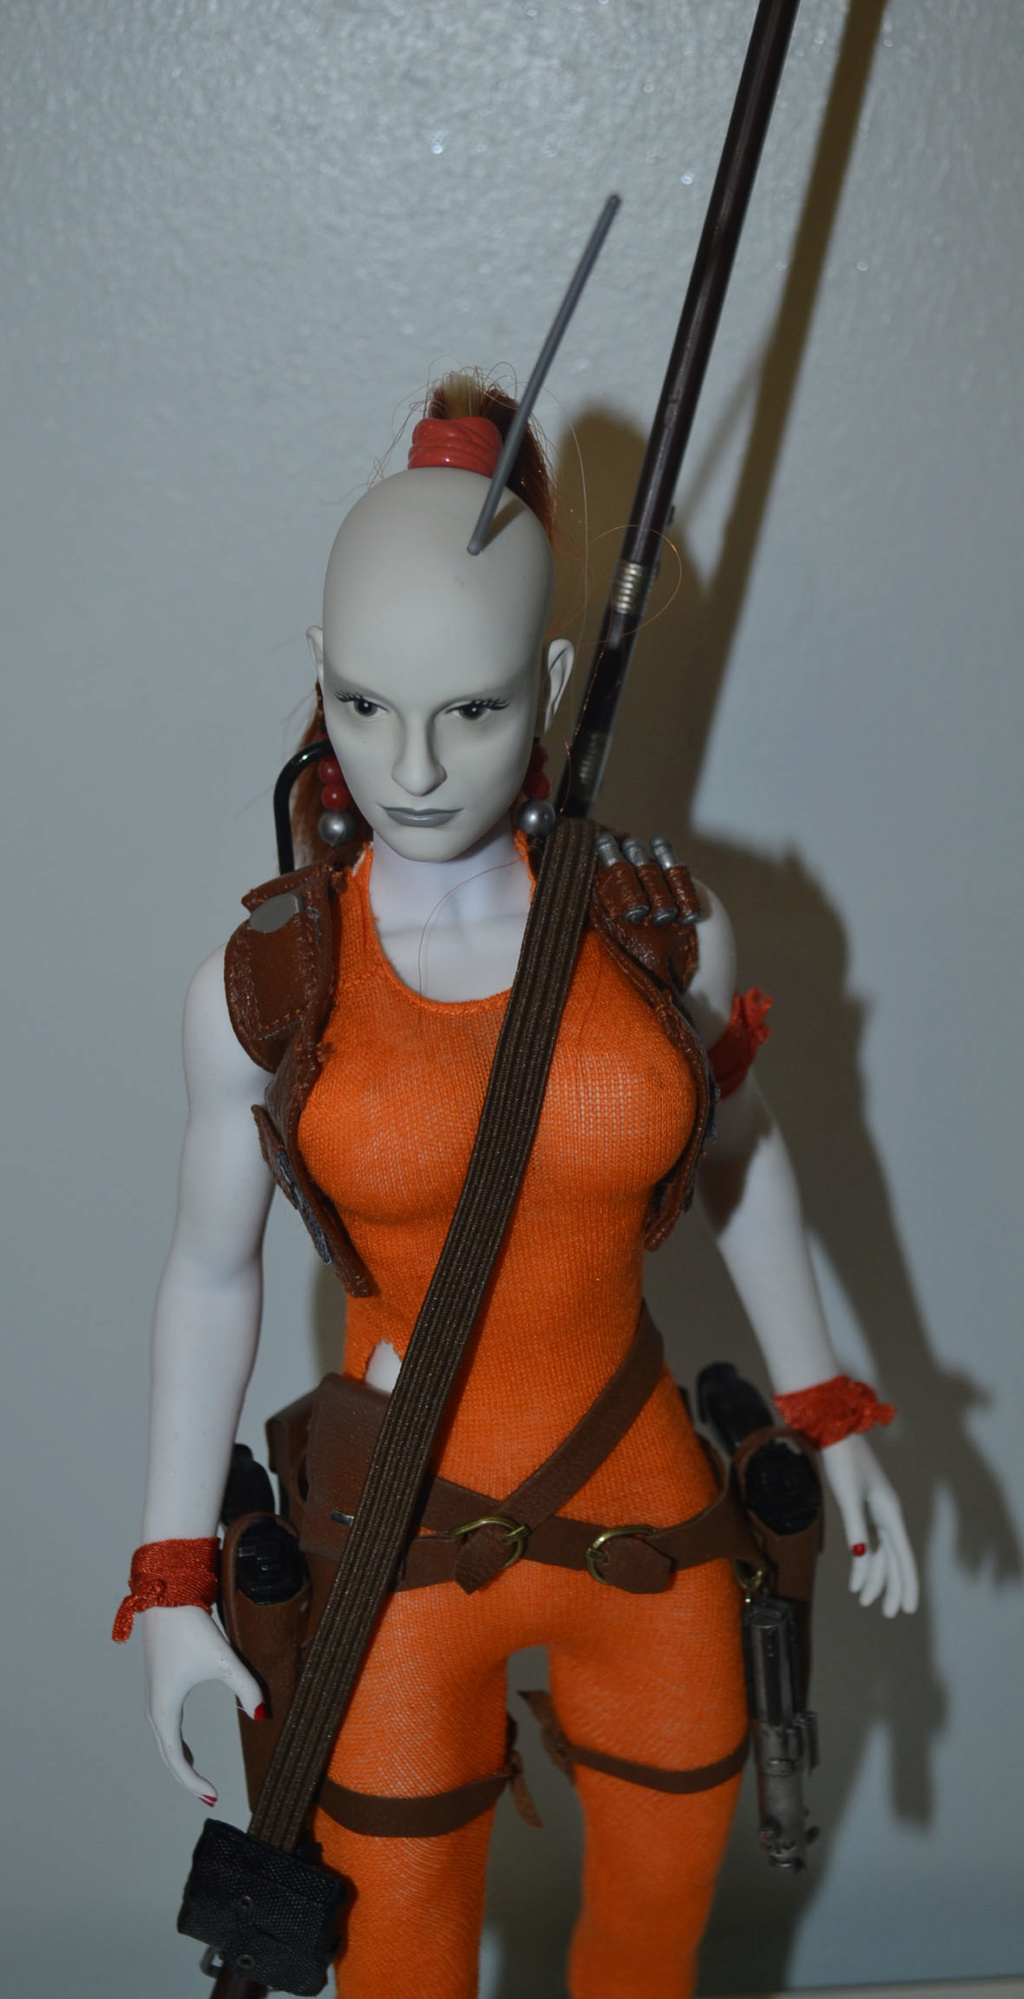 bountyhunter - Custom/Kitbash: Aurra Sing - Star Wars Bounty Hunter (Episode I) _dsc3132